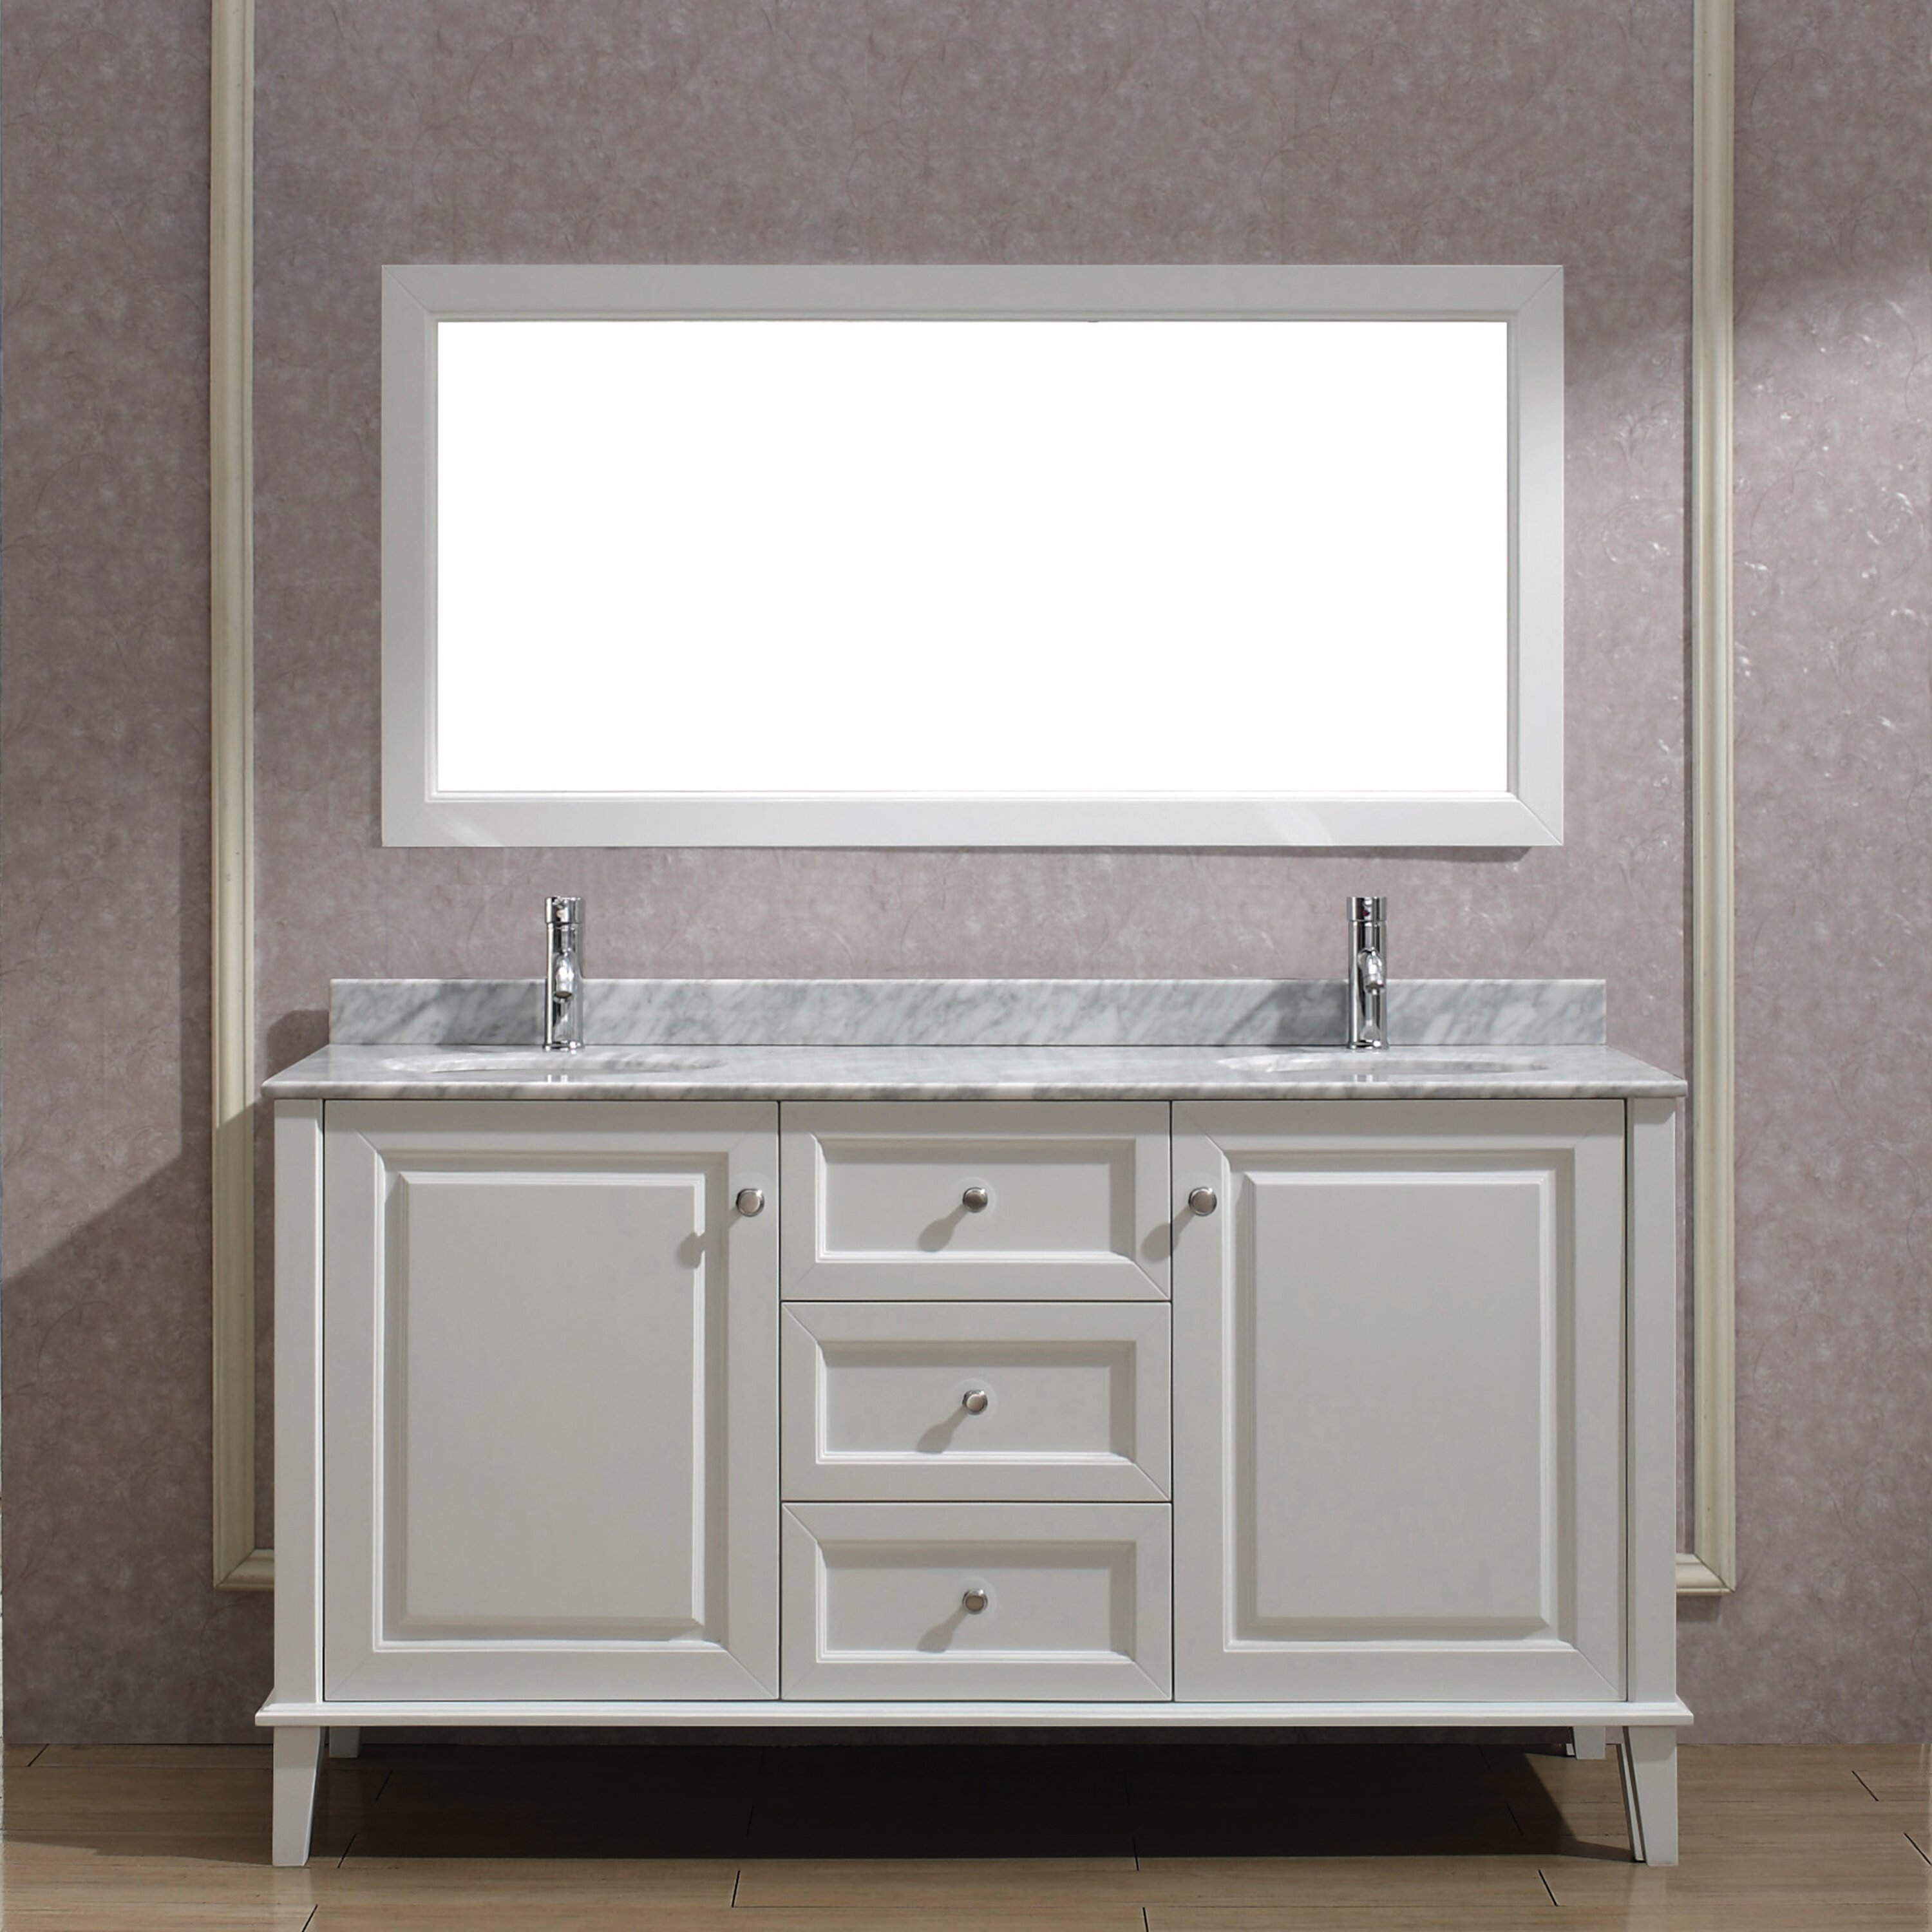 Bauhaus bath milly 63 double bathroom vanity set with for Bathroom mirror set